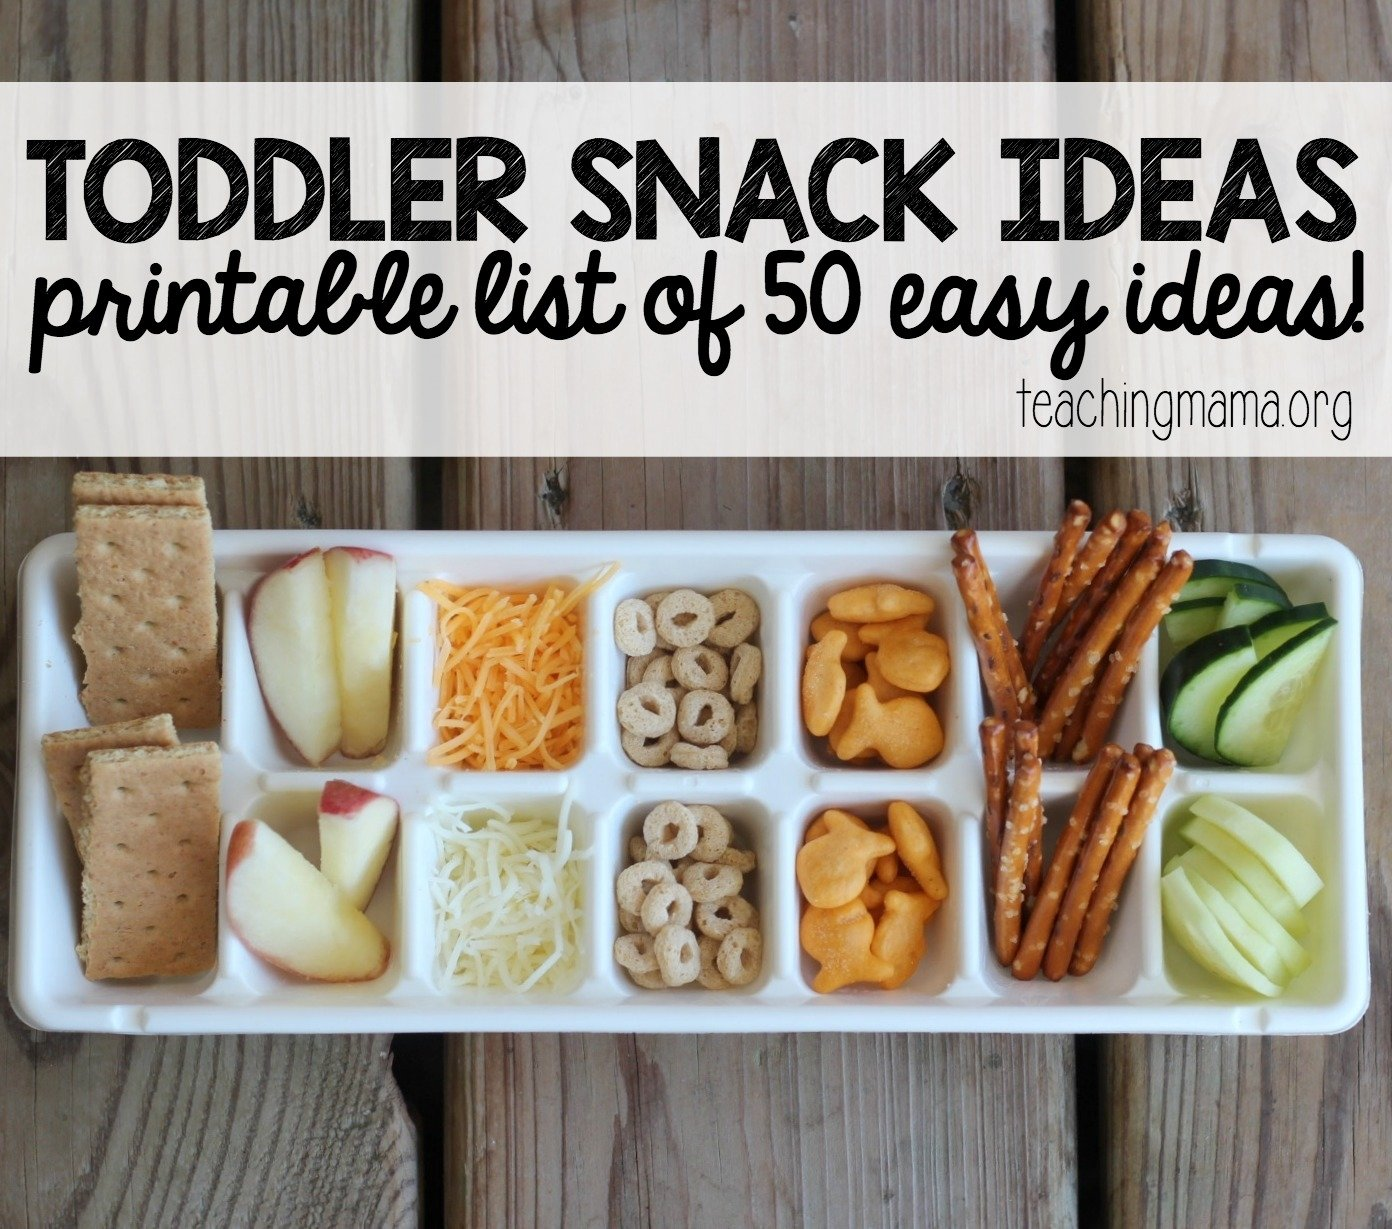 10 Famous Healthy Snack Ideas For Toddlers toddler snack ideas 2020